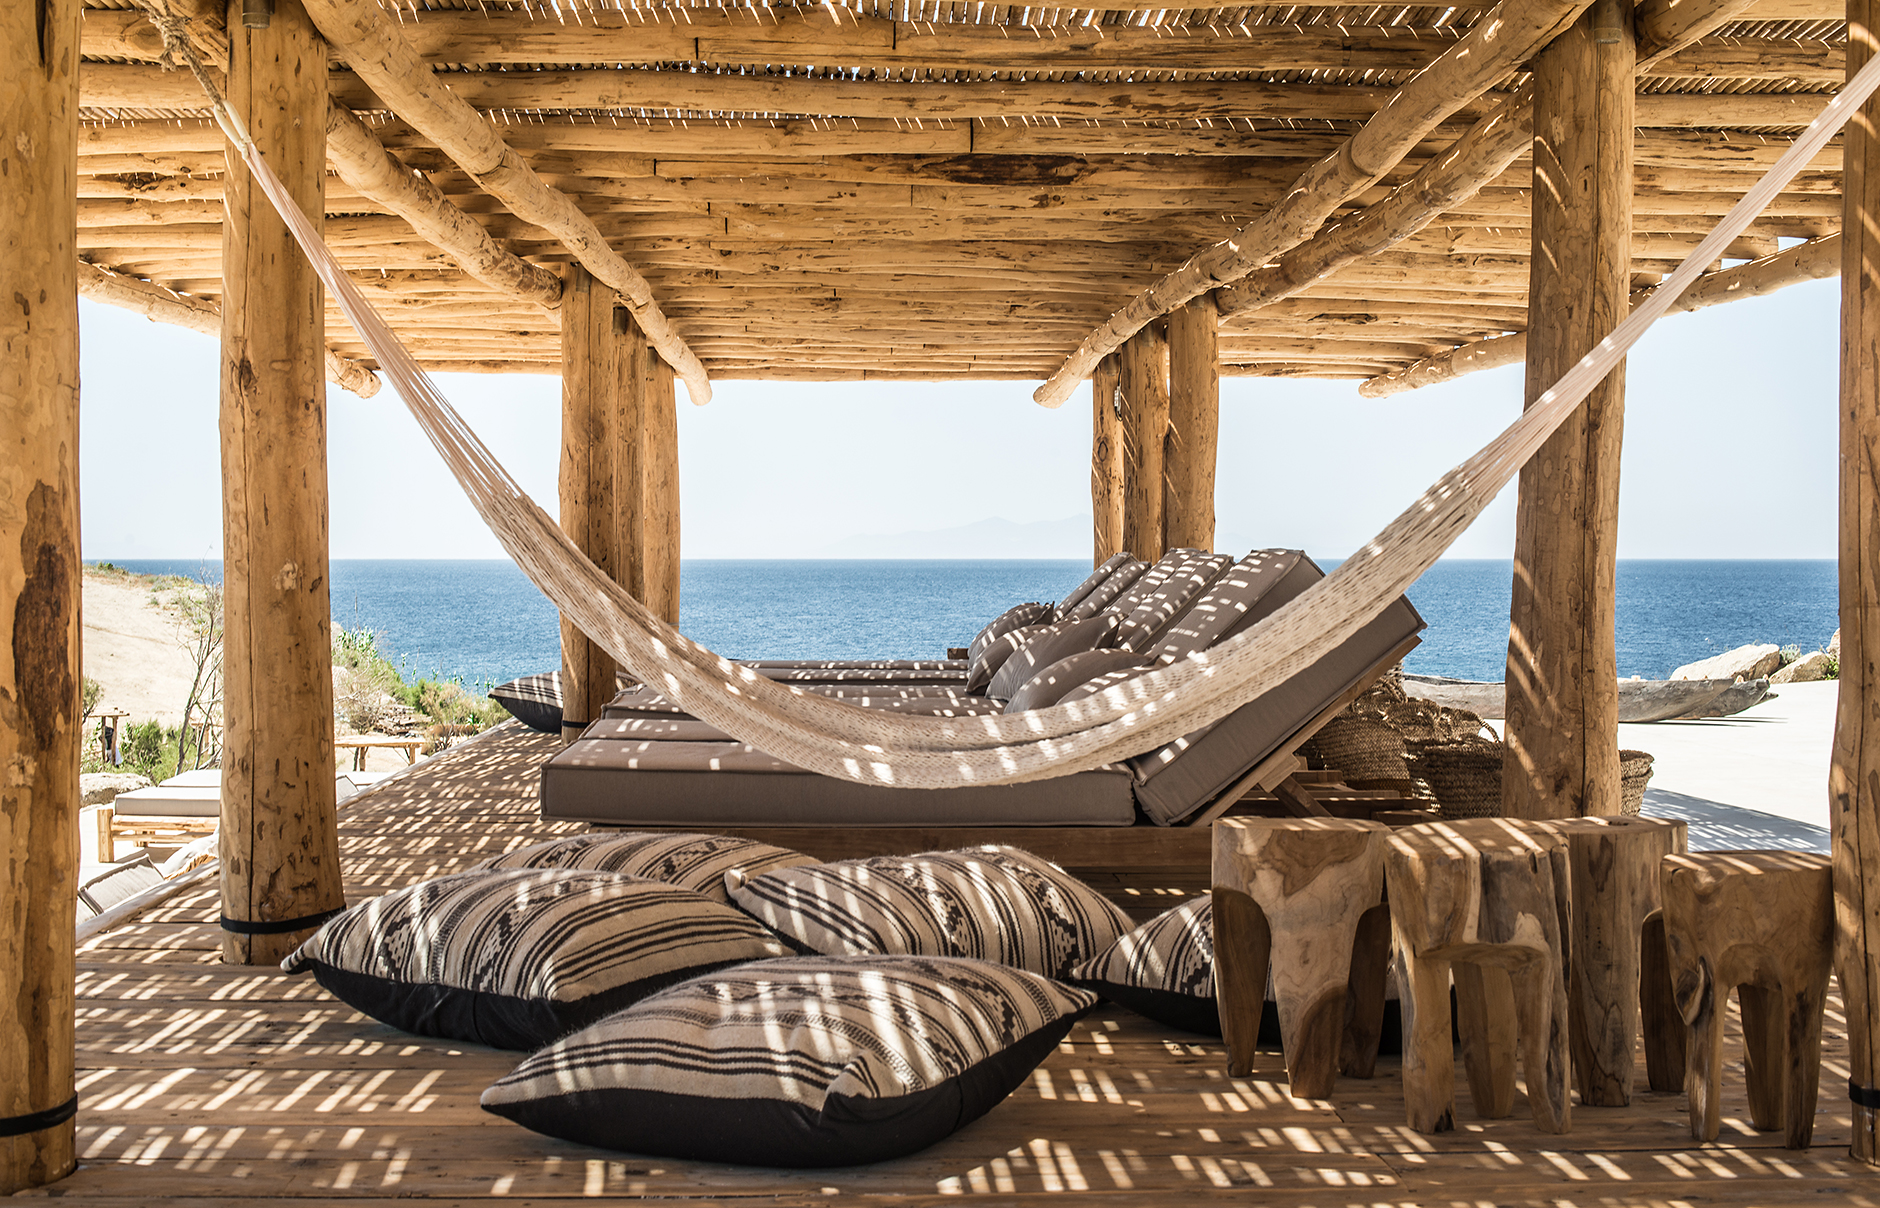 Rediscover A Rustic Beach Experience At Scorpios Mykonos In Greece 171 Luxury Hotels Travelplusstyle